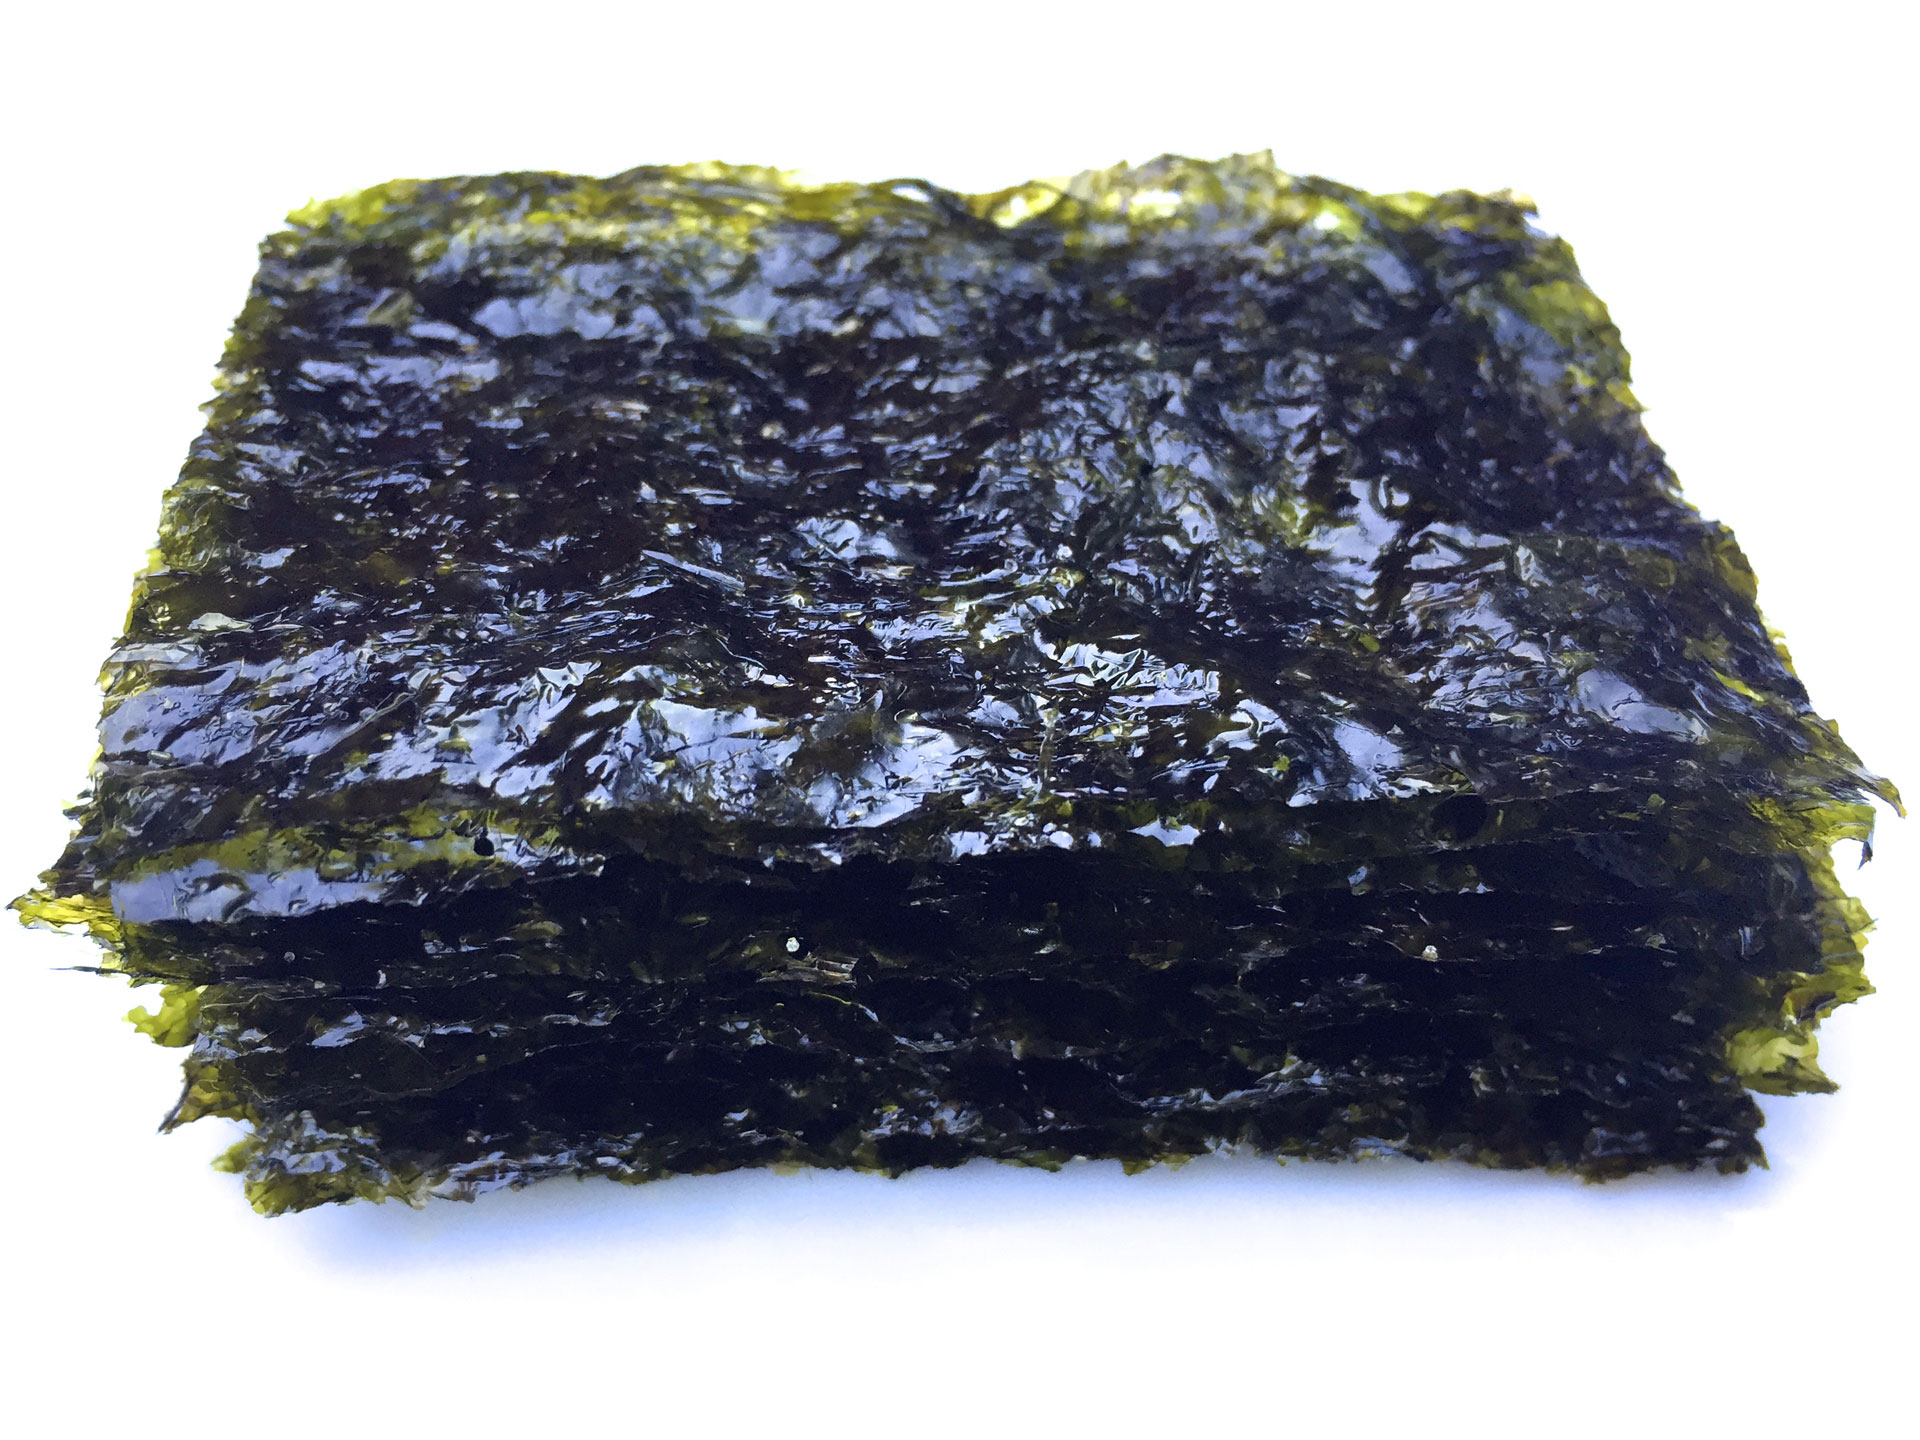 Roasted nori cut into snack sized sheets